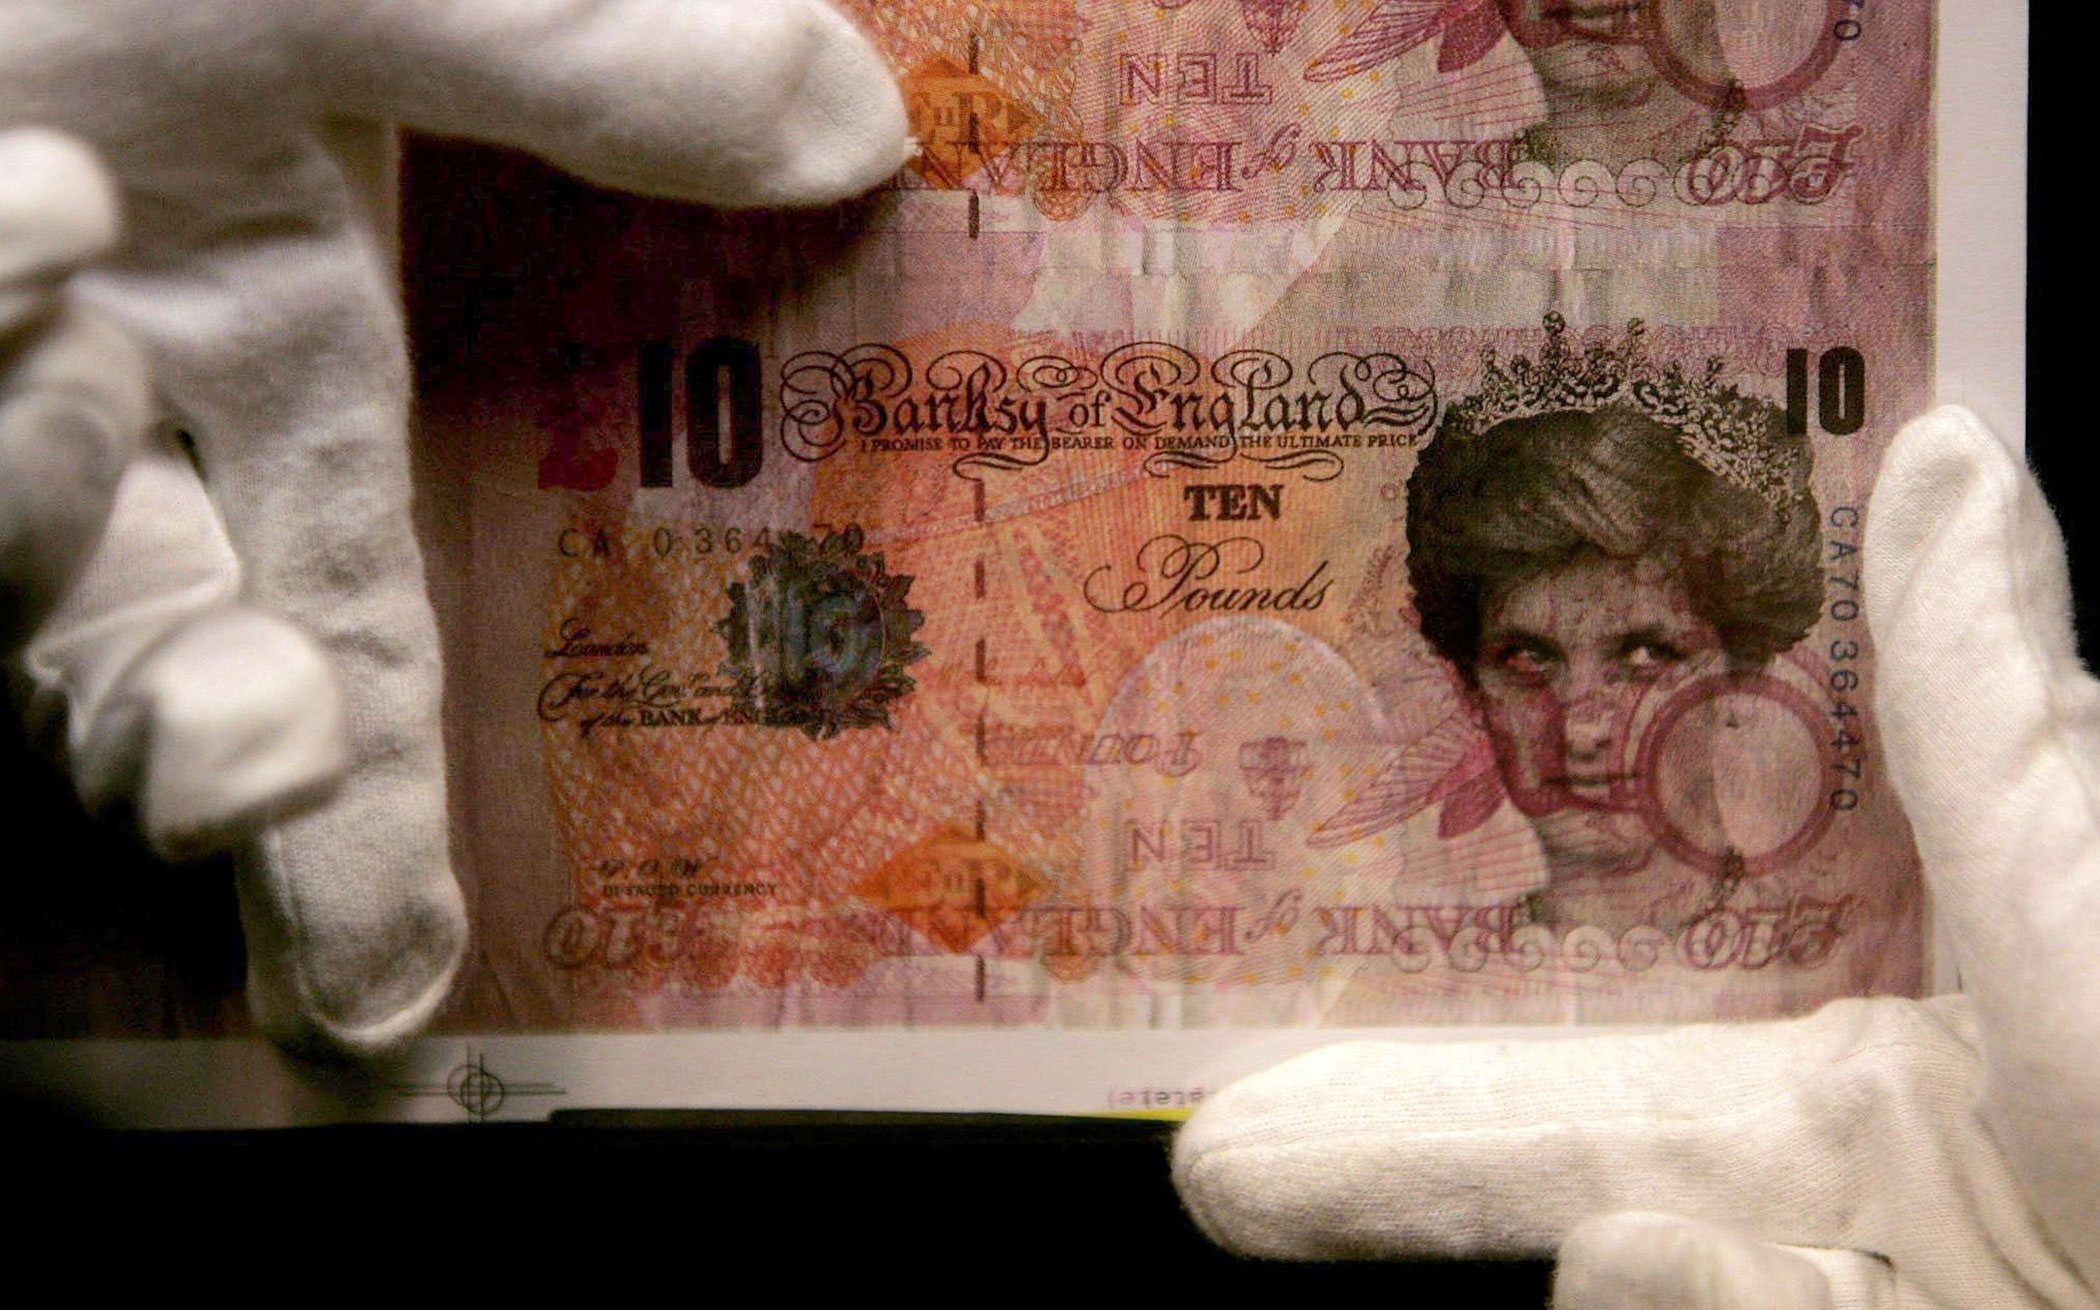 A screen print titled 'Di Faced Tenners' showing the face of Princess Diana in place of Britain's Queen Elizabeth II is one of ten Banksy pieces on display in Bonhams Auction House in London on Monday, Oct. 22, 2007